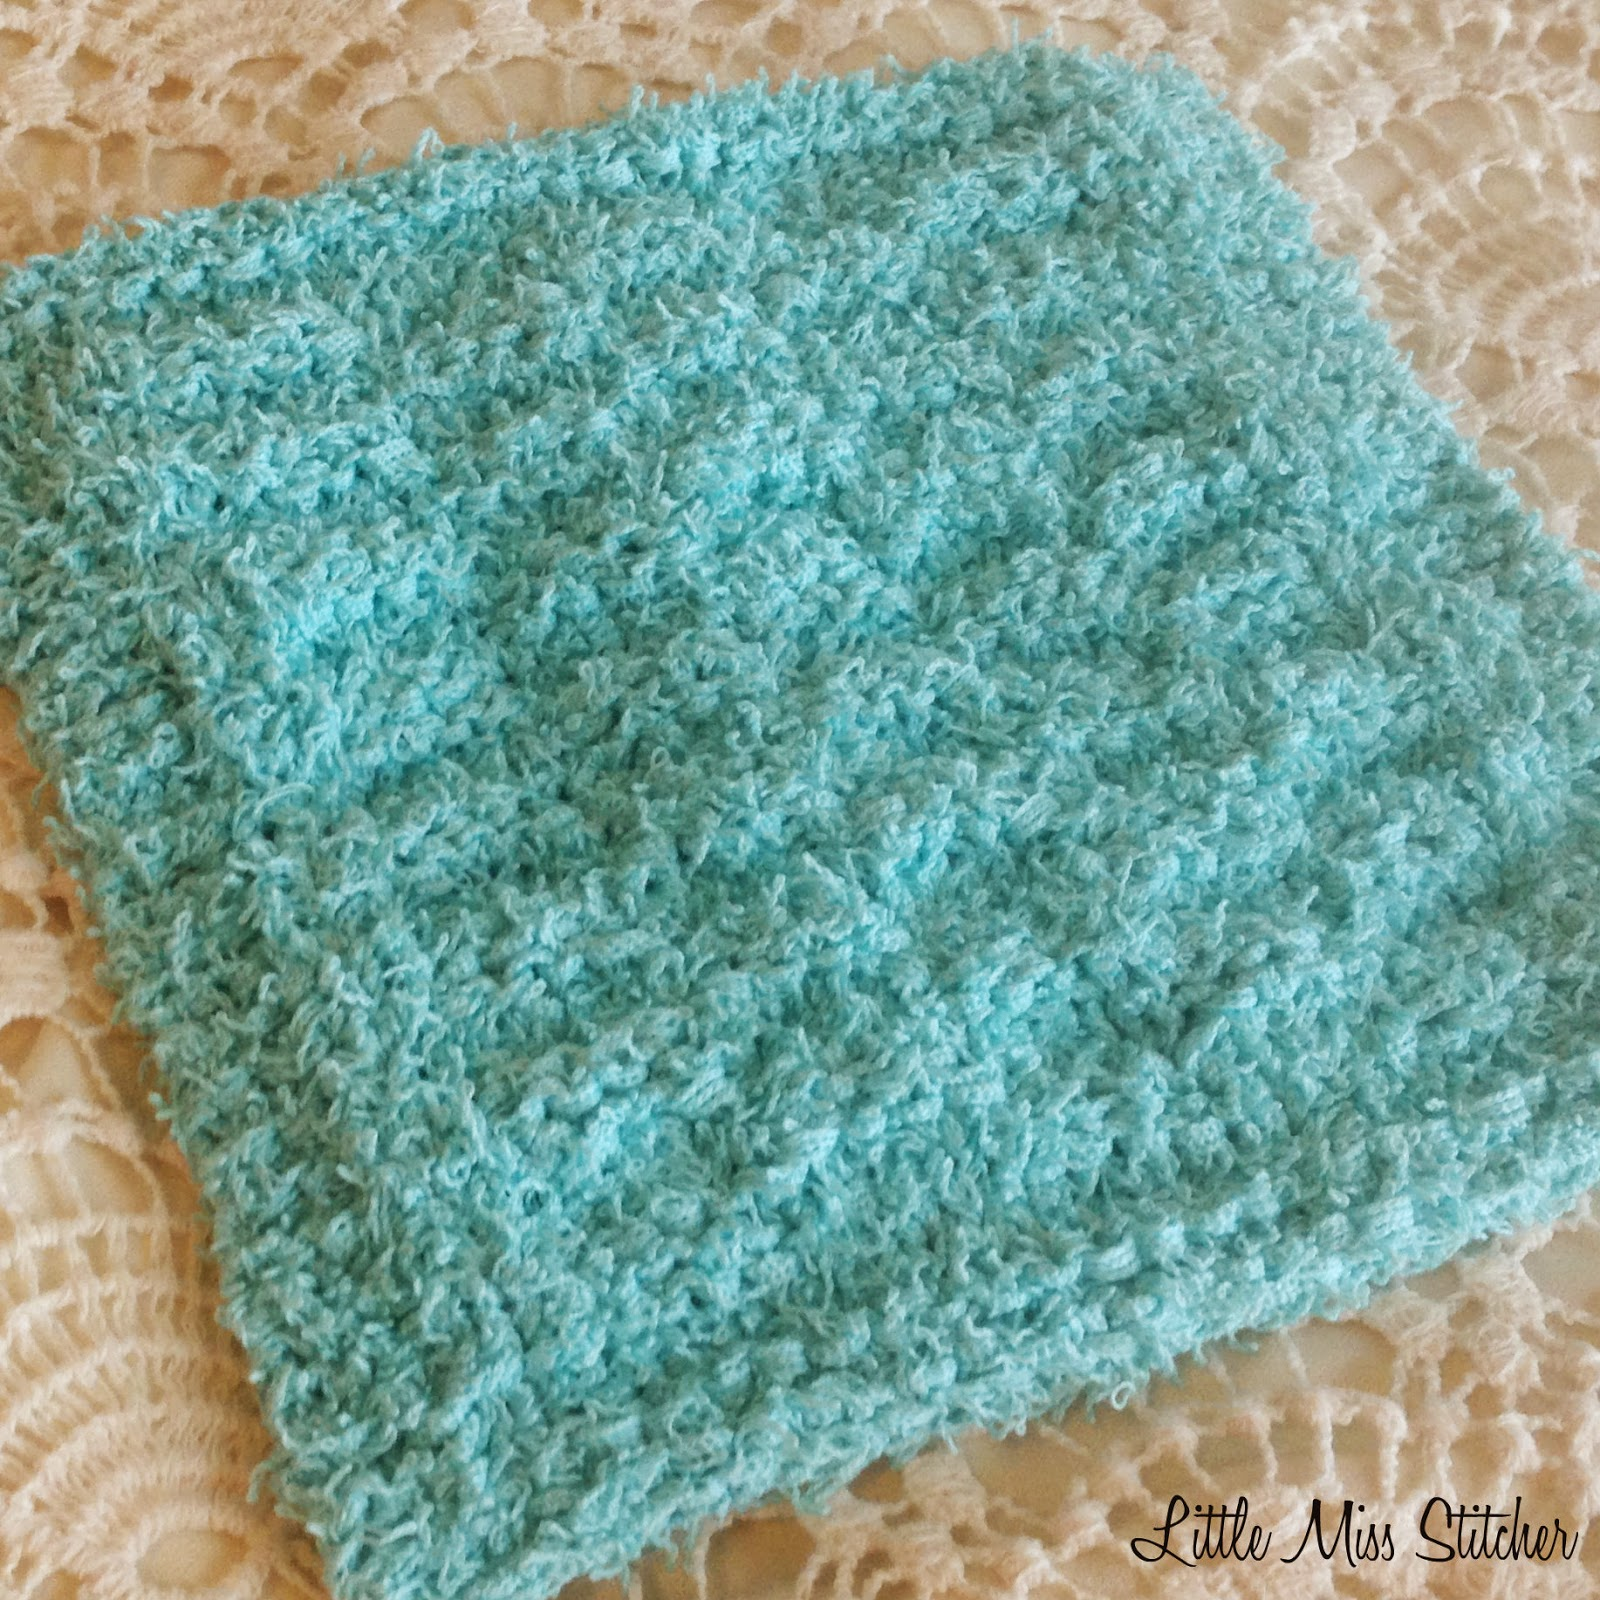 Knit Dishcloth Pattern Free : Little Miss Stitcher: 5 Free Knit Dishcloth Patterns